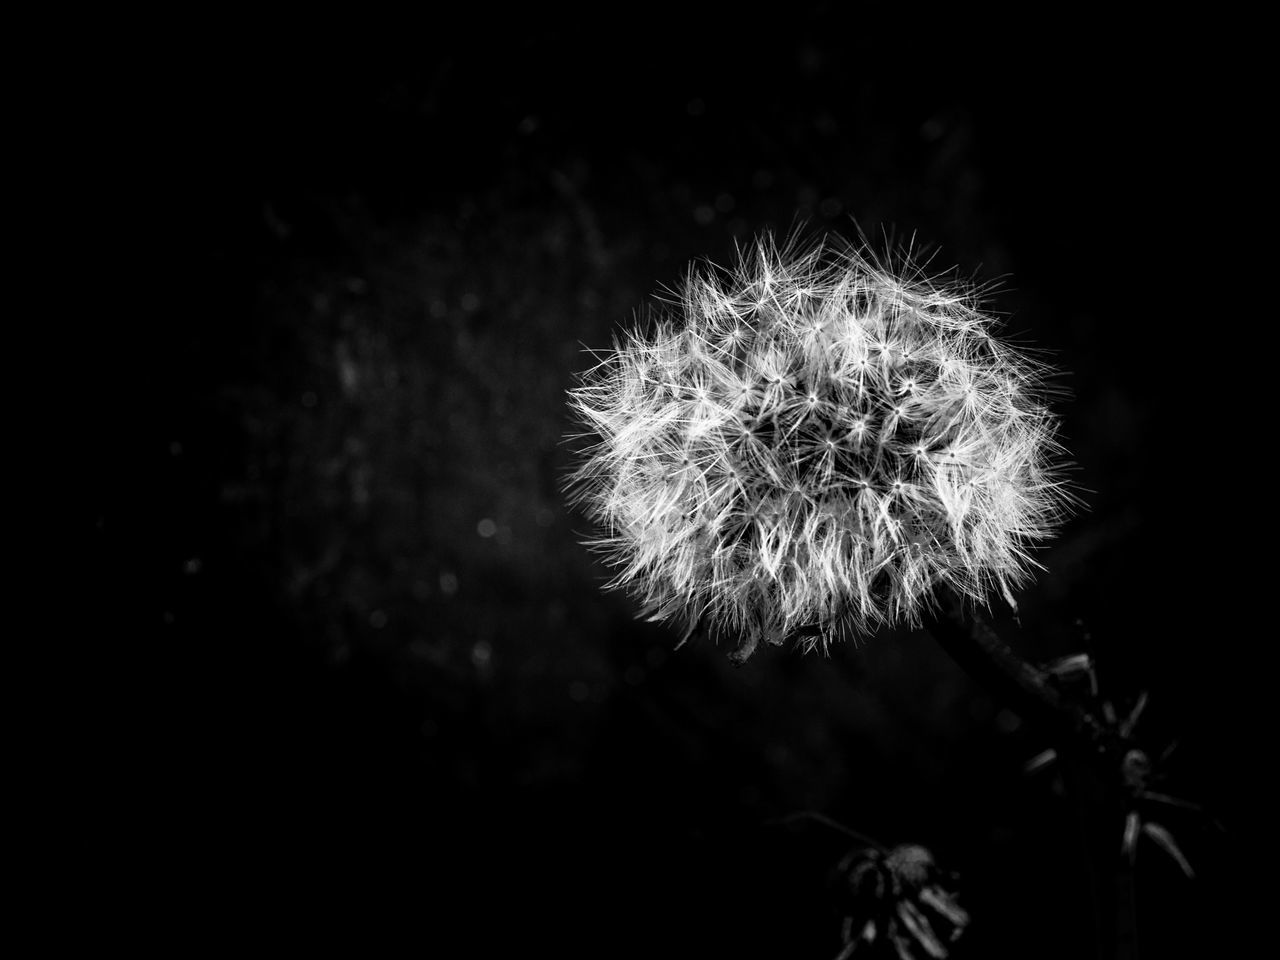 Beauty In Nature Black Background Blowball Close-up Dandelion Dandelion Seed Flower Flower Head Focus On Foreground Fragility Freshness Growth Nature No People Outdoors Plant Softness Springtime